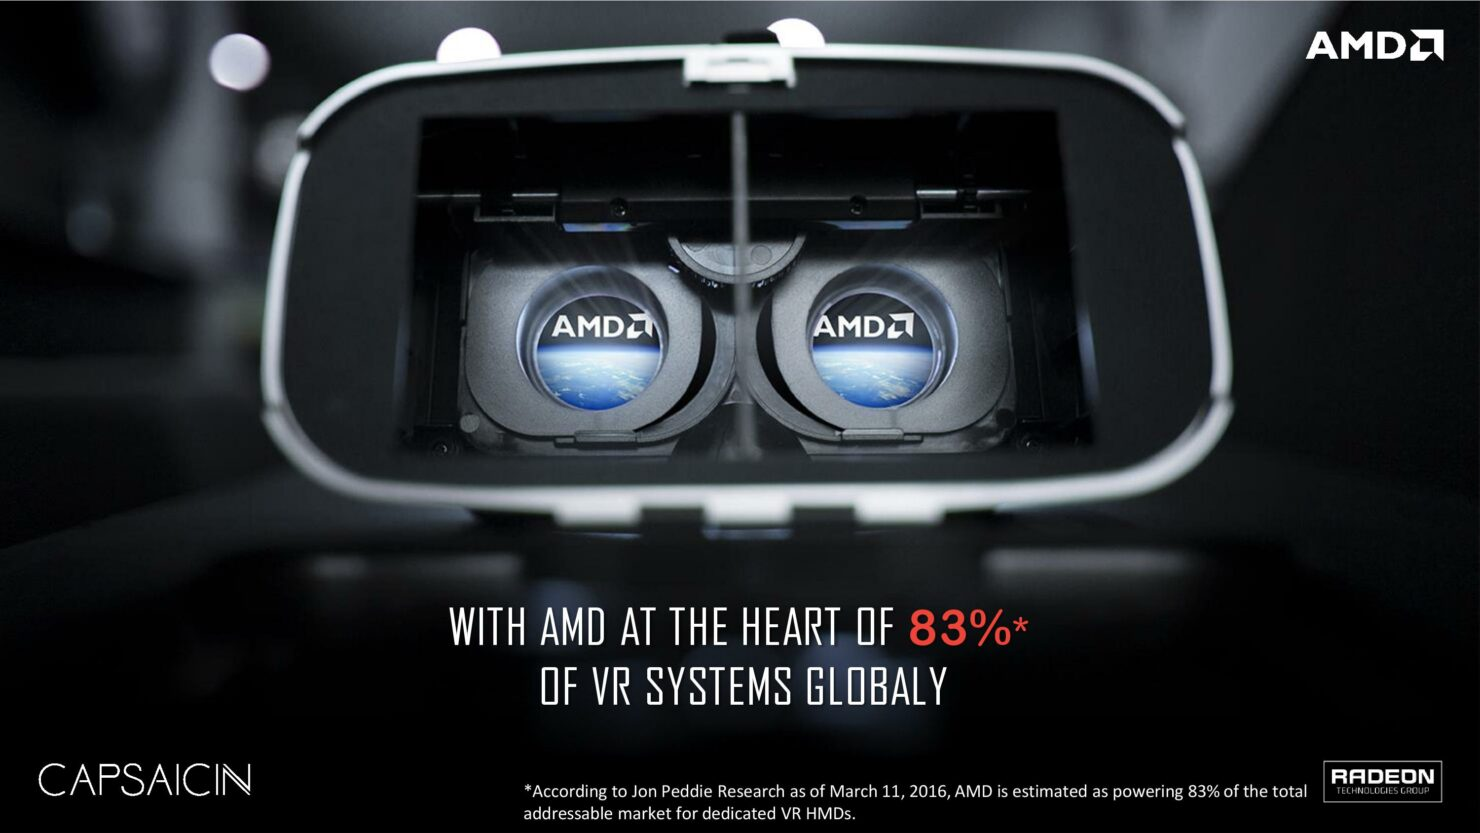 capsaicin-presented-by-amd-radeon_final-page-060